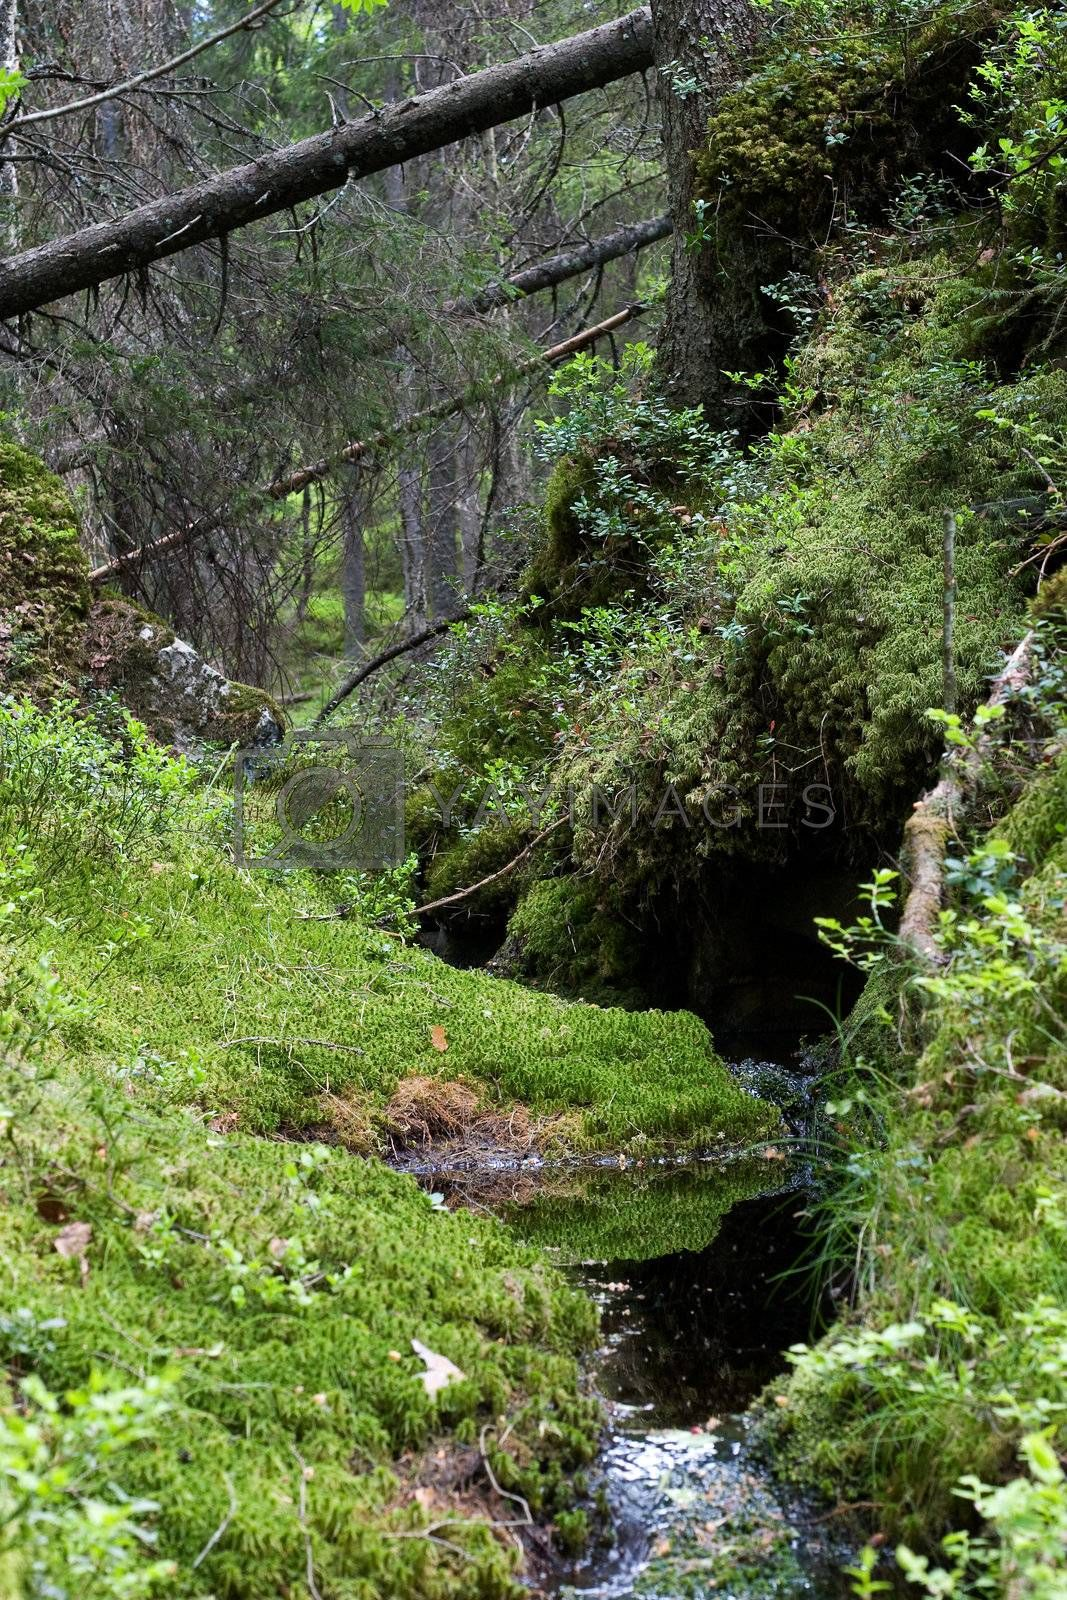 A view of a dense forest with little stream